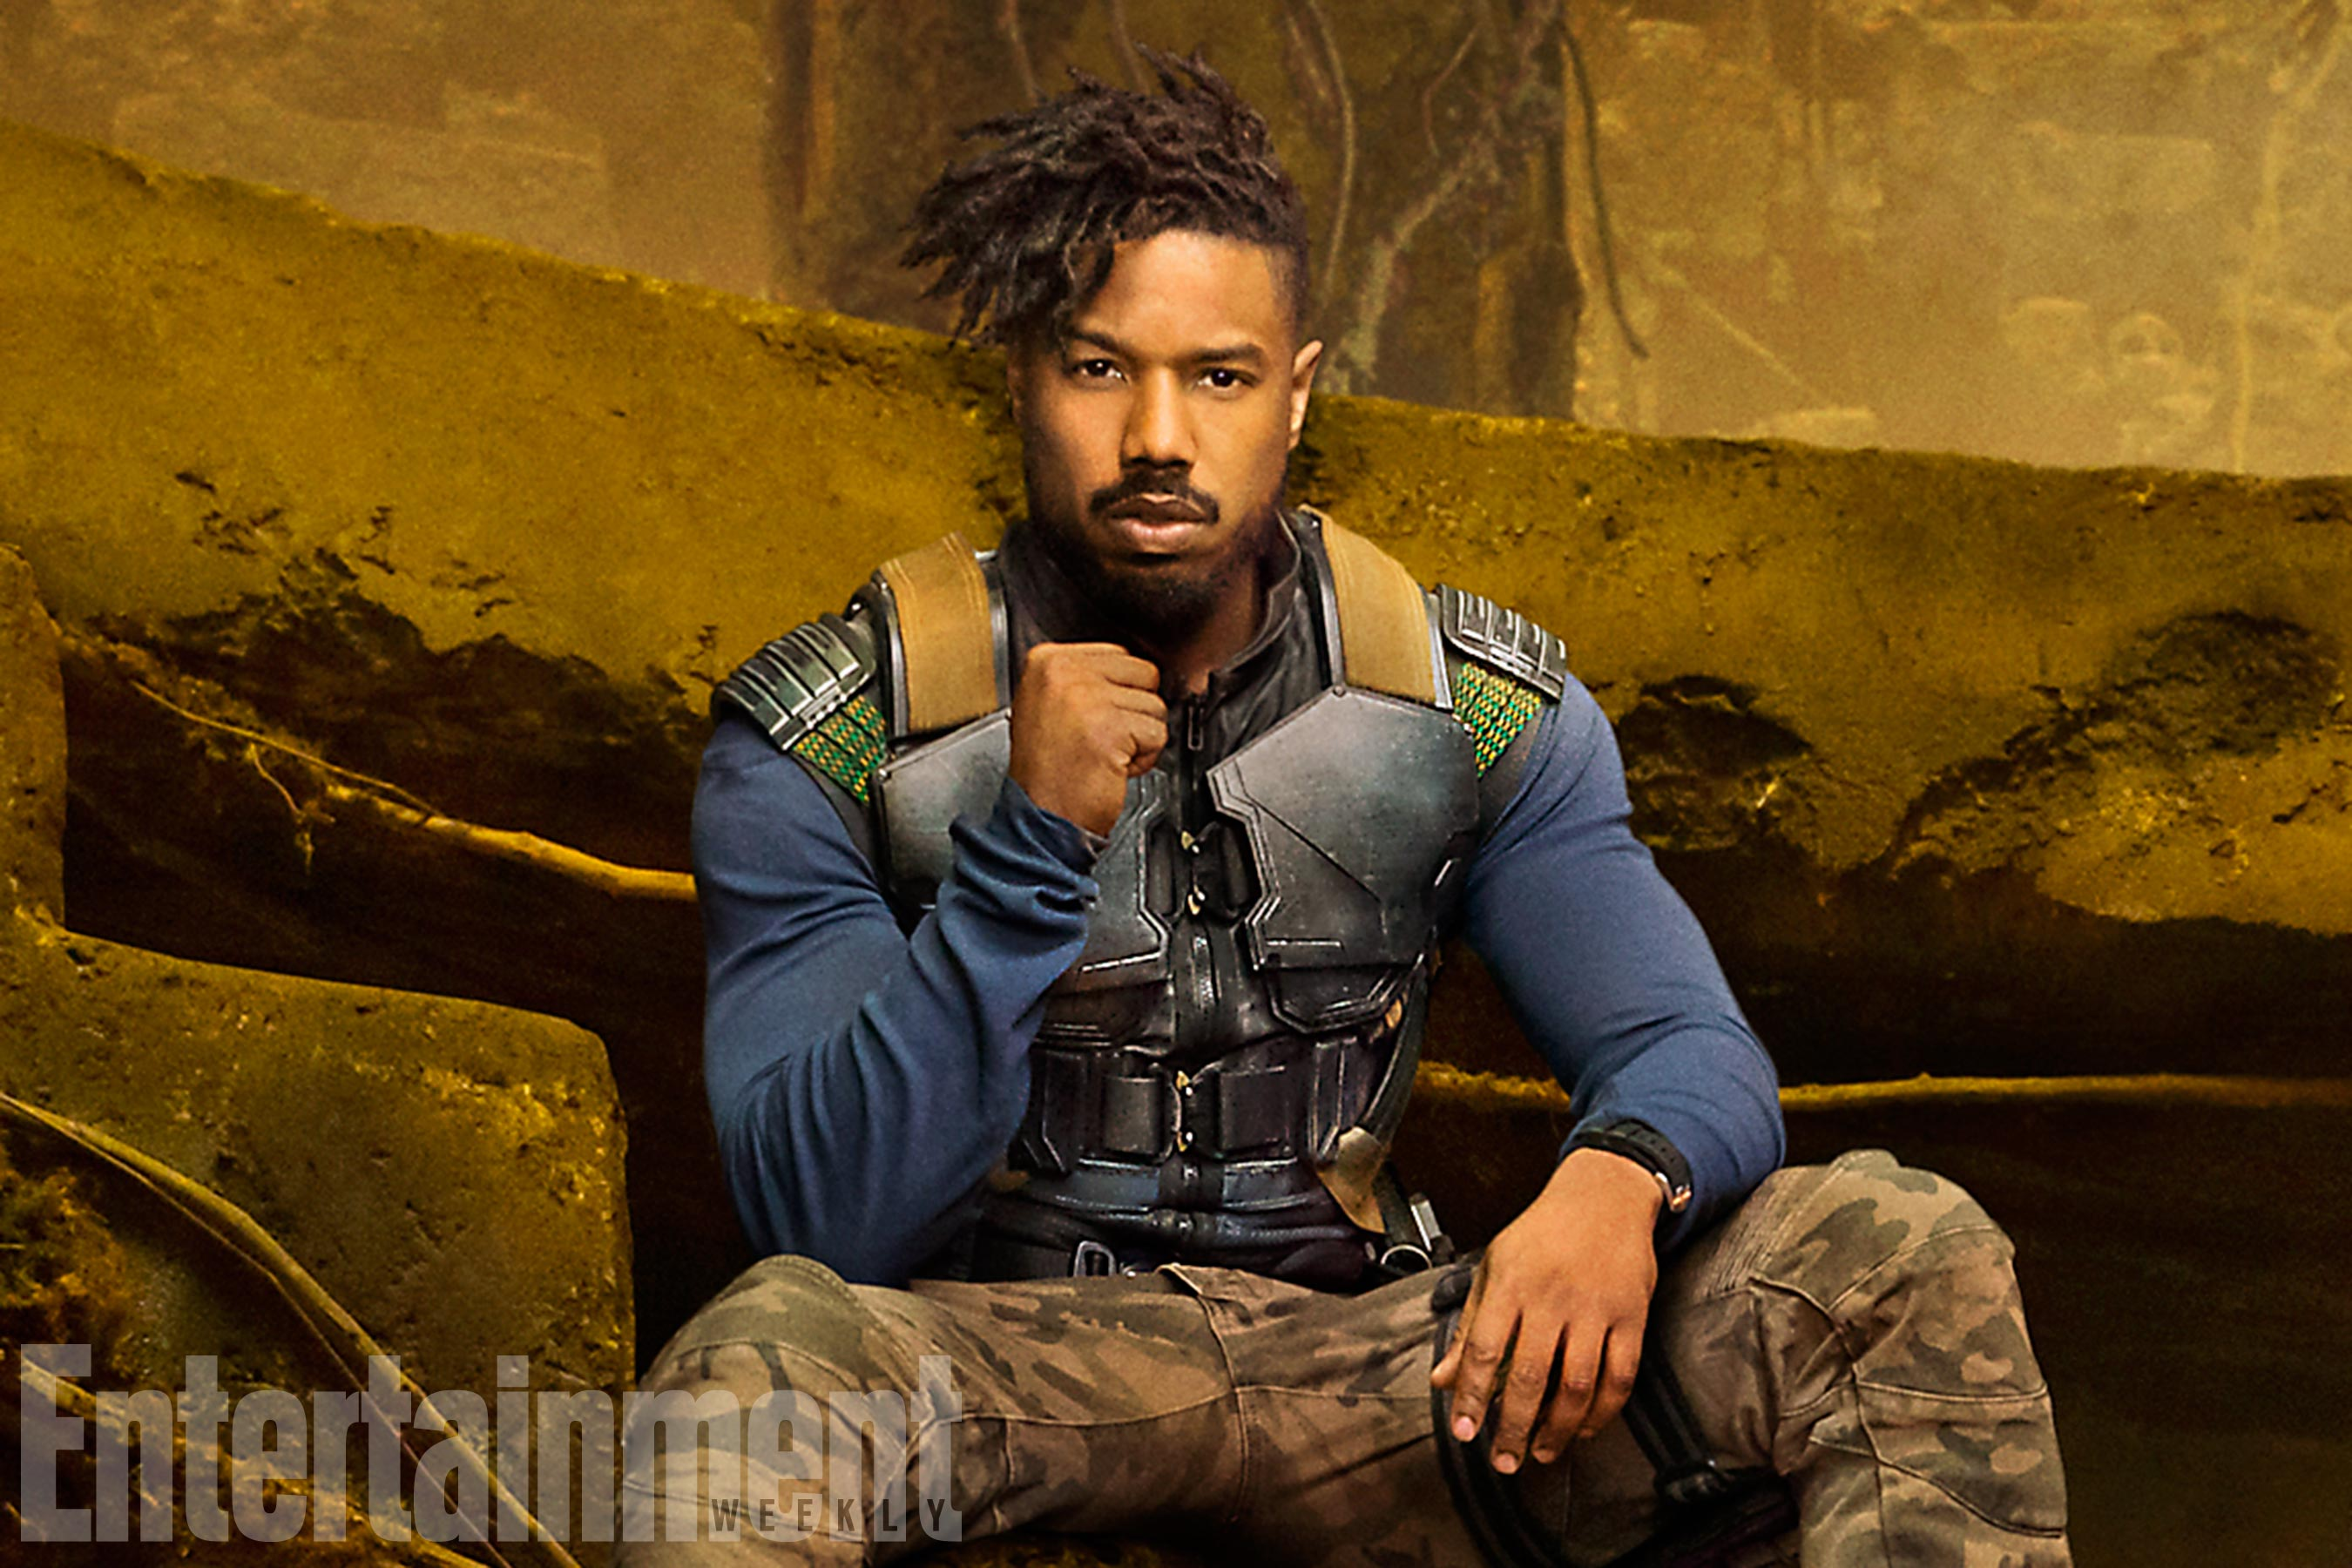 2932x2932 Pubg Android Game 4k Ipad Pro Retina Display Hd: Michael B. Jordan As Erik Killmonger